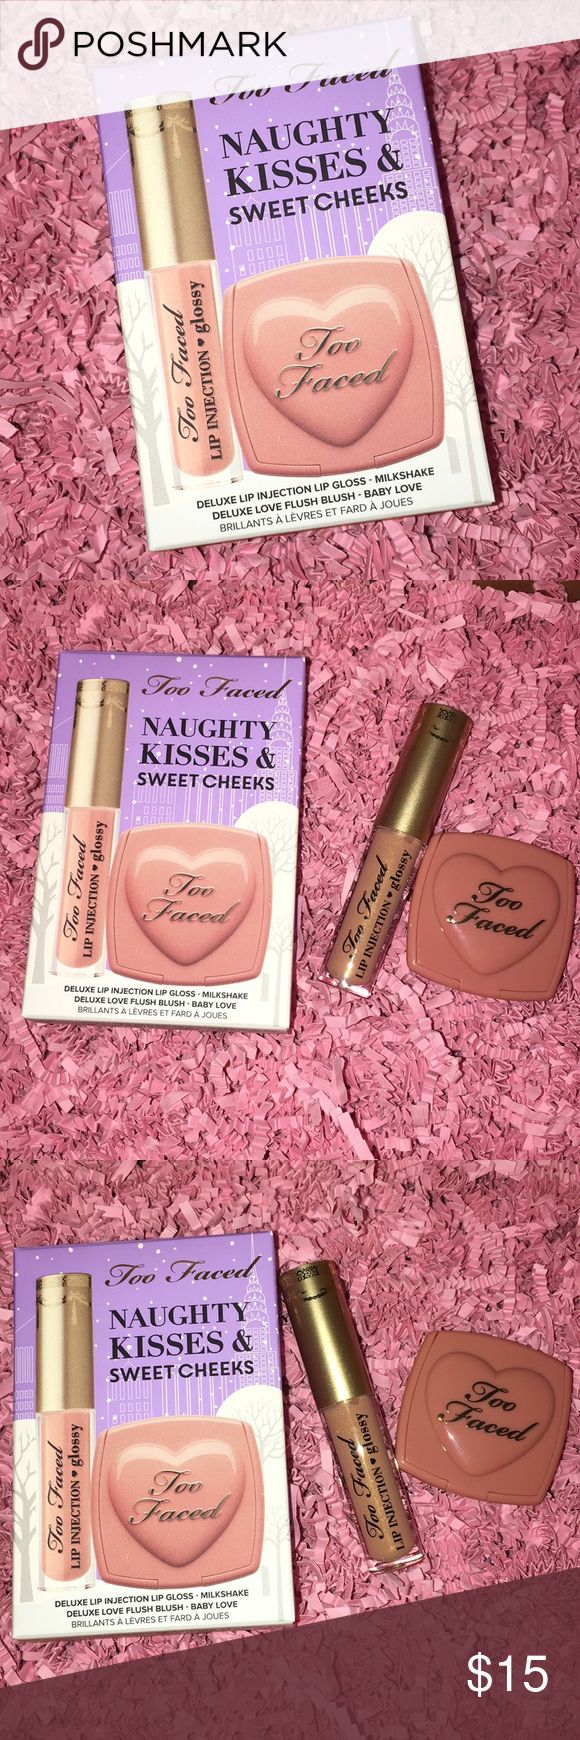 TooFaced Lipgloss & Blush Melted Kisses & Sweet Cheeks  ▫️Lip Injection Power Plumping Lip Gloss - milkshake - Deluxe Size ▫️Love Flush long lasting 16Hour Blush - baby love  - Deluxe Size   Brand New. Never Used. Never Swatch  No Trade. No Hold. No Offer. Price Firm Too Faced Makeup Lip Balm & Gloss